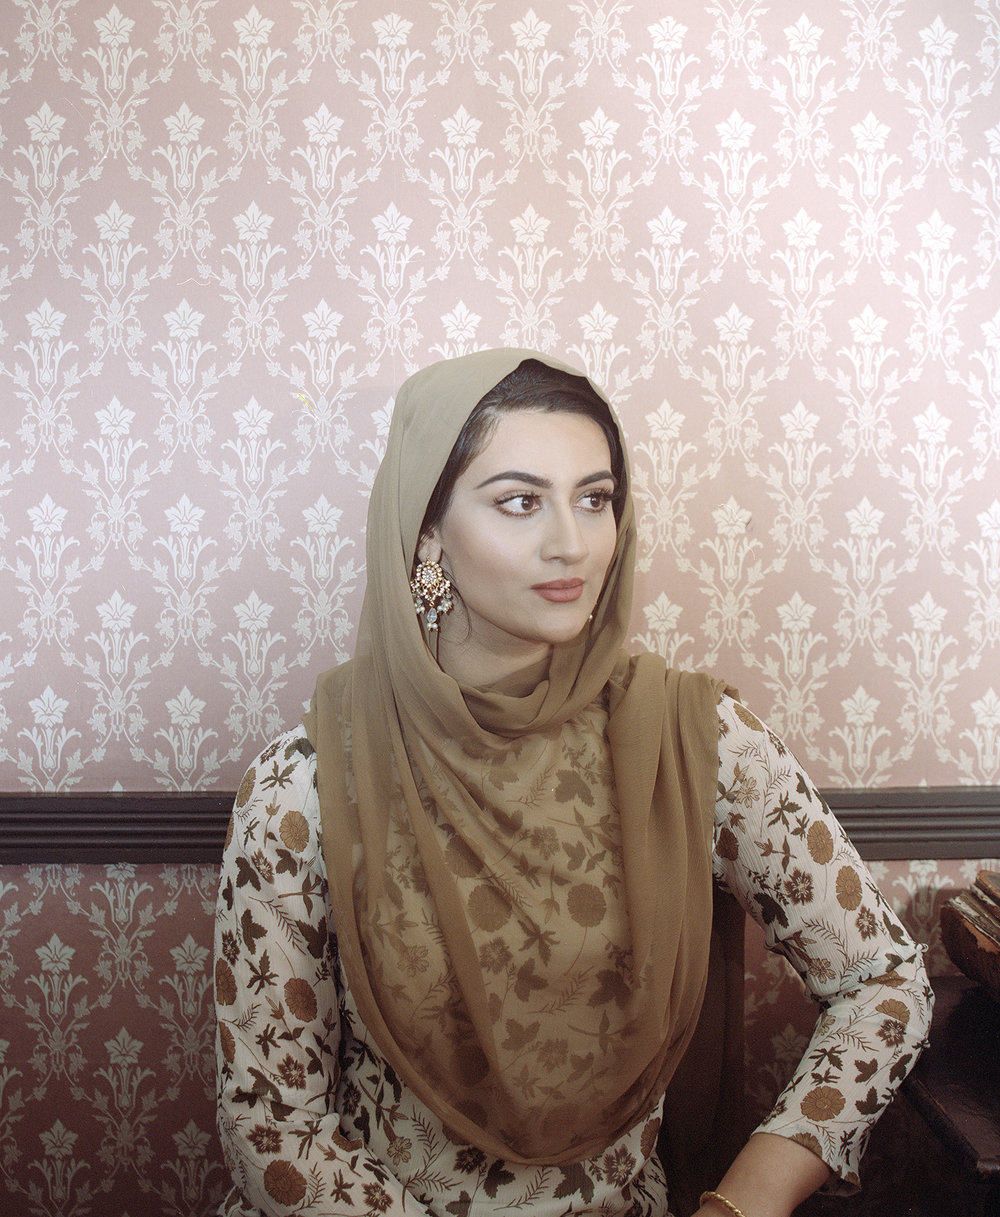 Women From The Pakistani Diaspora, by Maryam Wahid.  A self-portrait representing the style of women who migrated to Great Britain from Pakistan. This image is from a project about the country's South Asian diaspora.